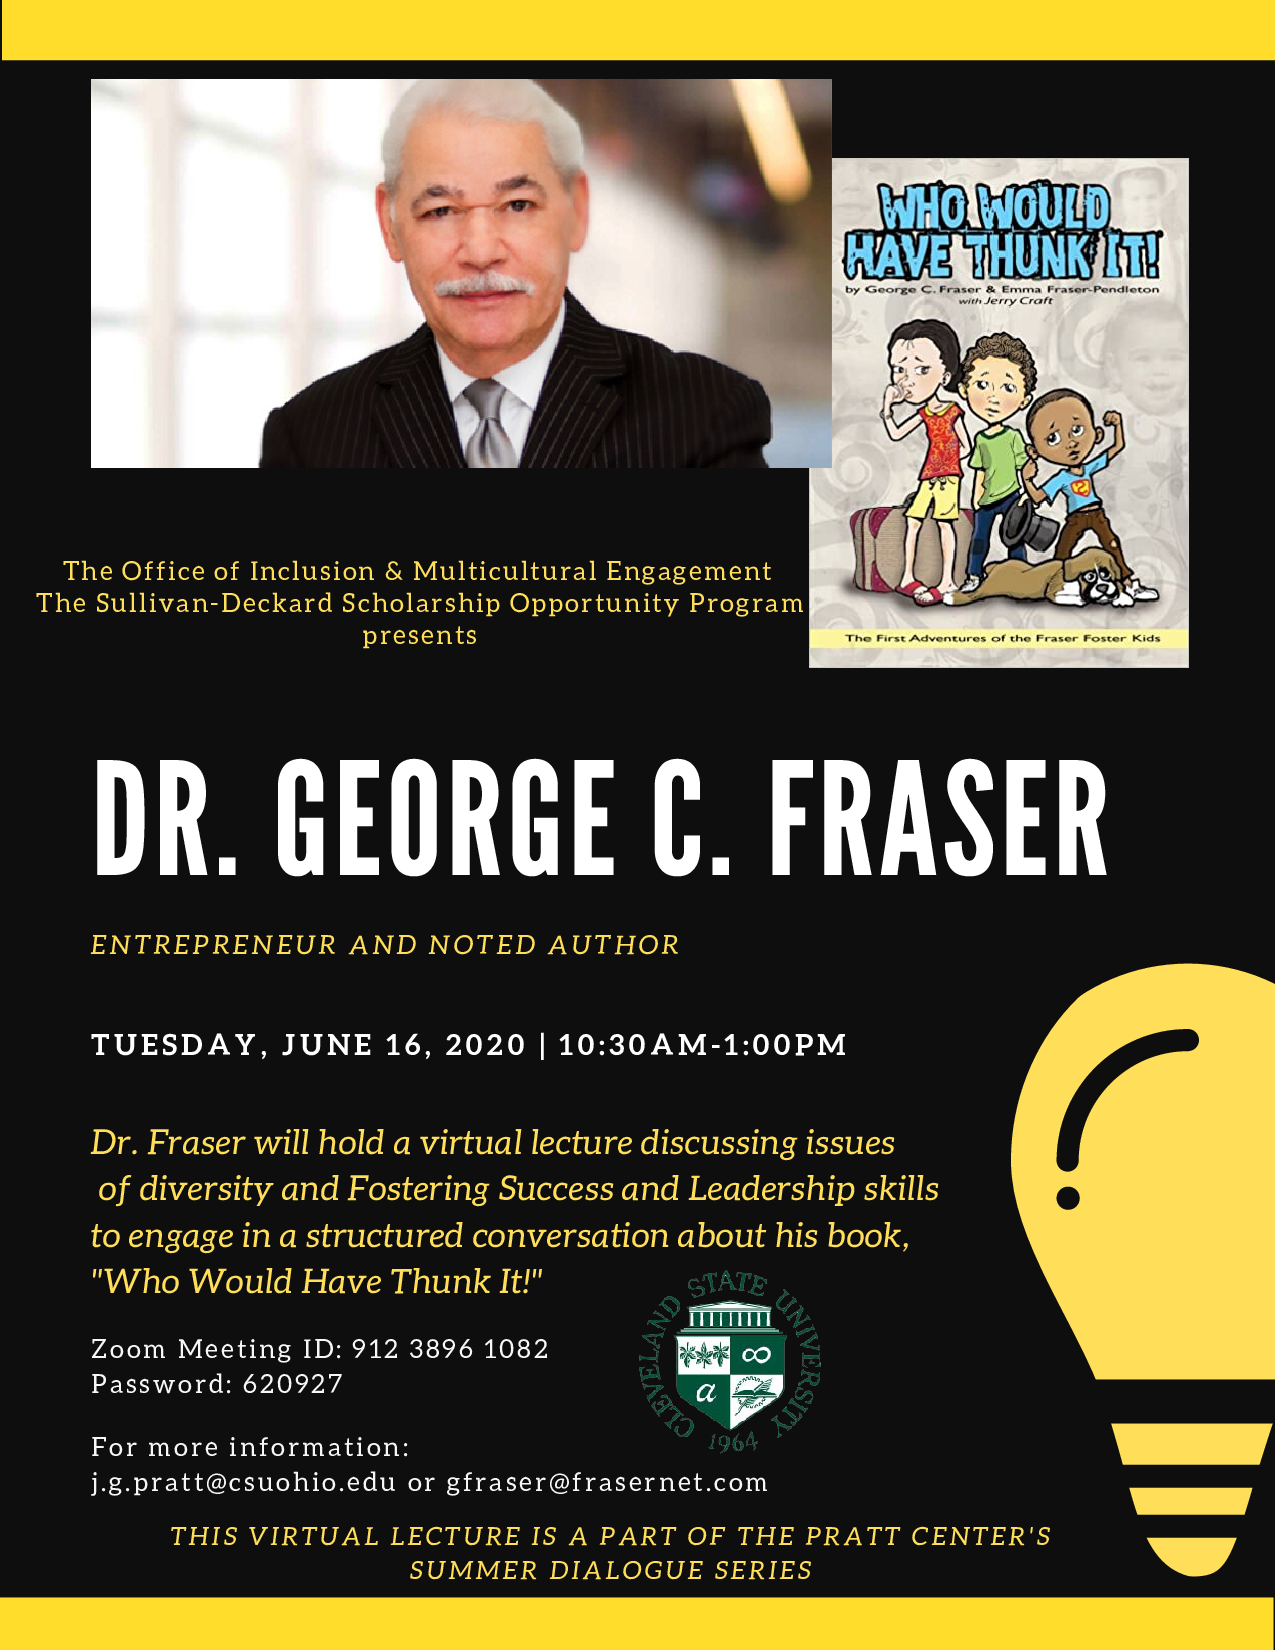 """Dr. George C. Fraser virtual lecture on his book, """"Who Would Have Thunk It?"""""""